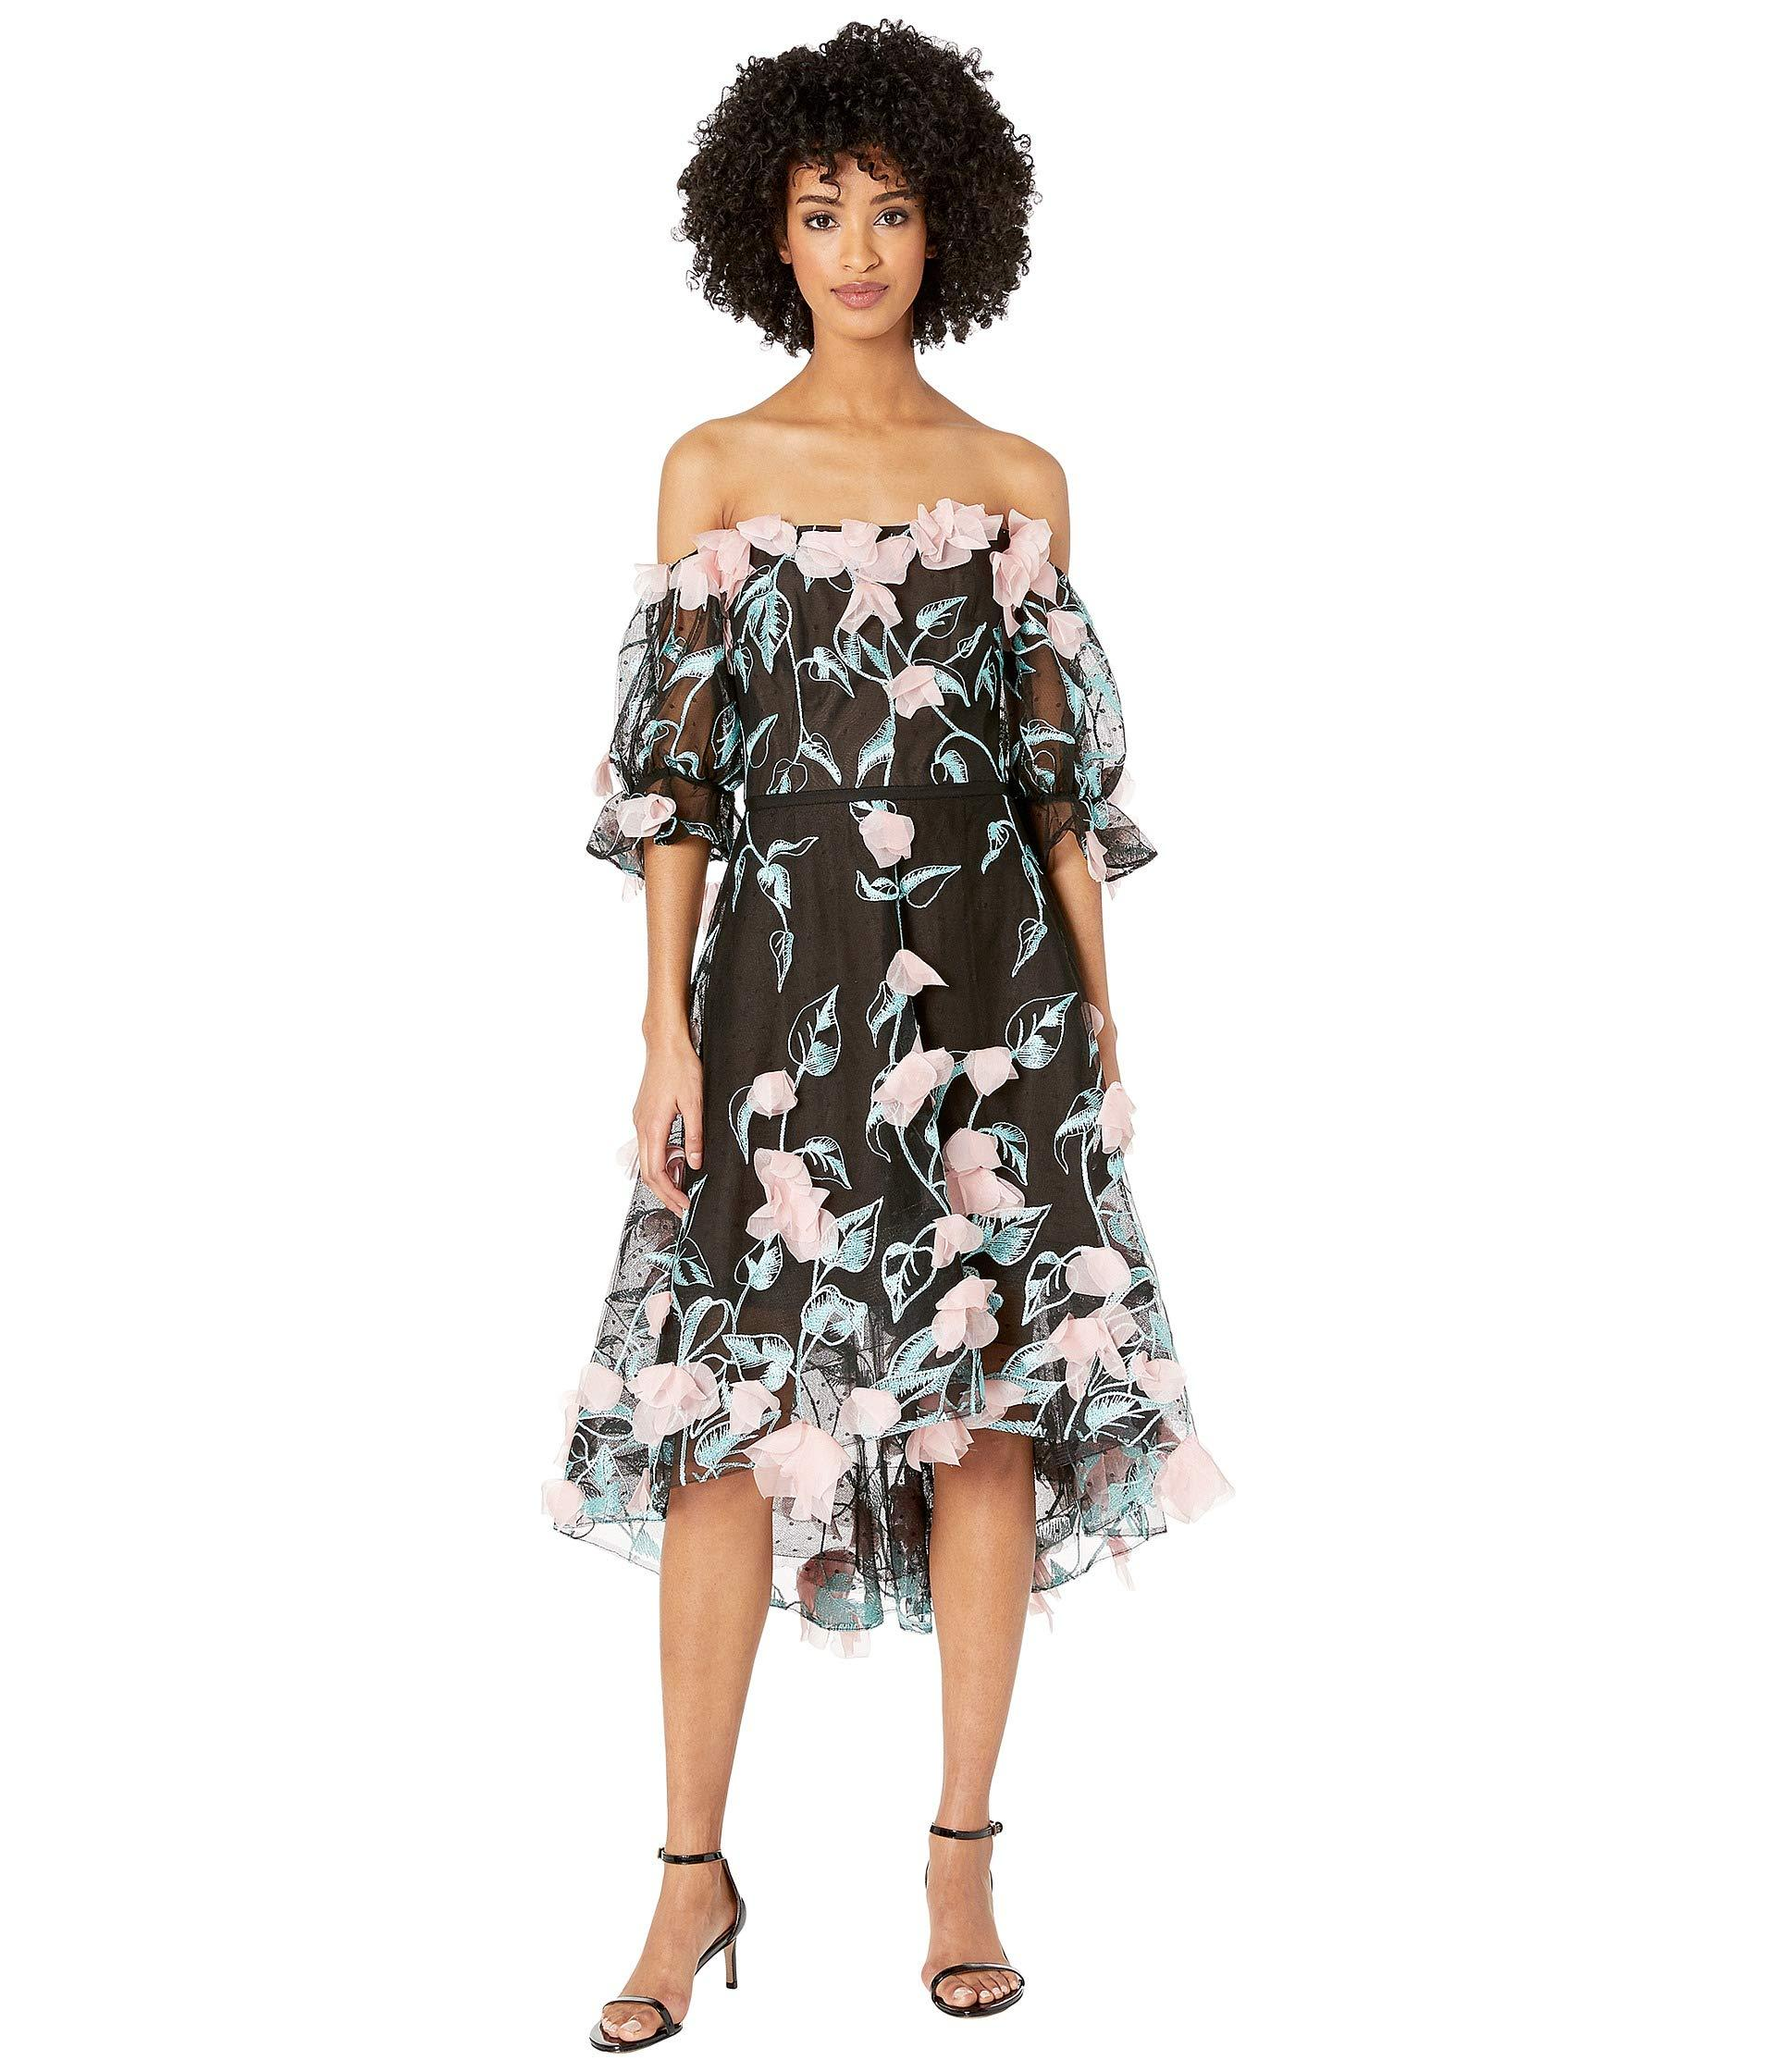 231eb6bc Marchesa notte. Off The Shoulder 3d Floral Embroidered Cocktail With  Blouson Sleeve And Trims (black) Women's Dress